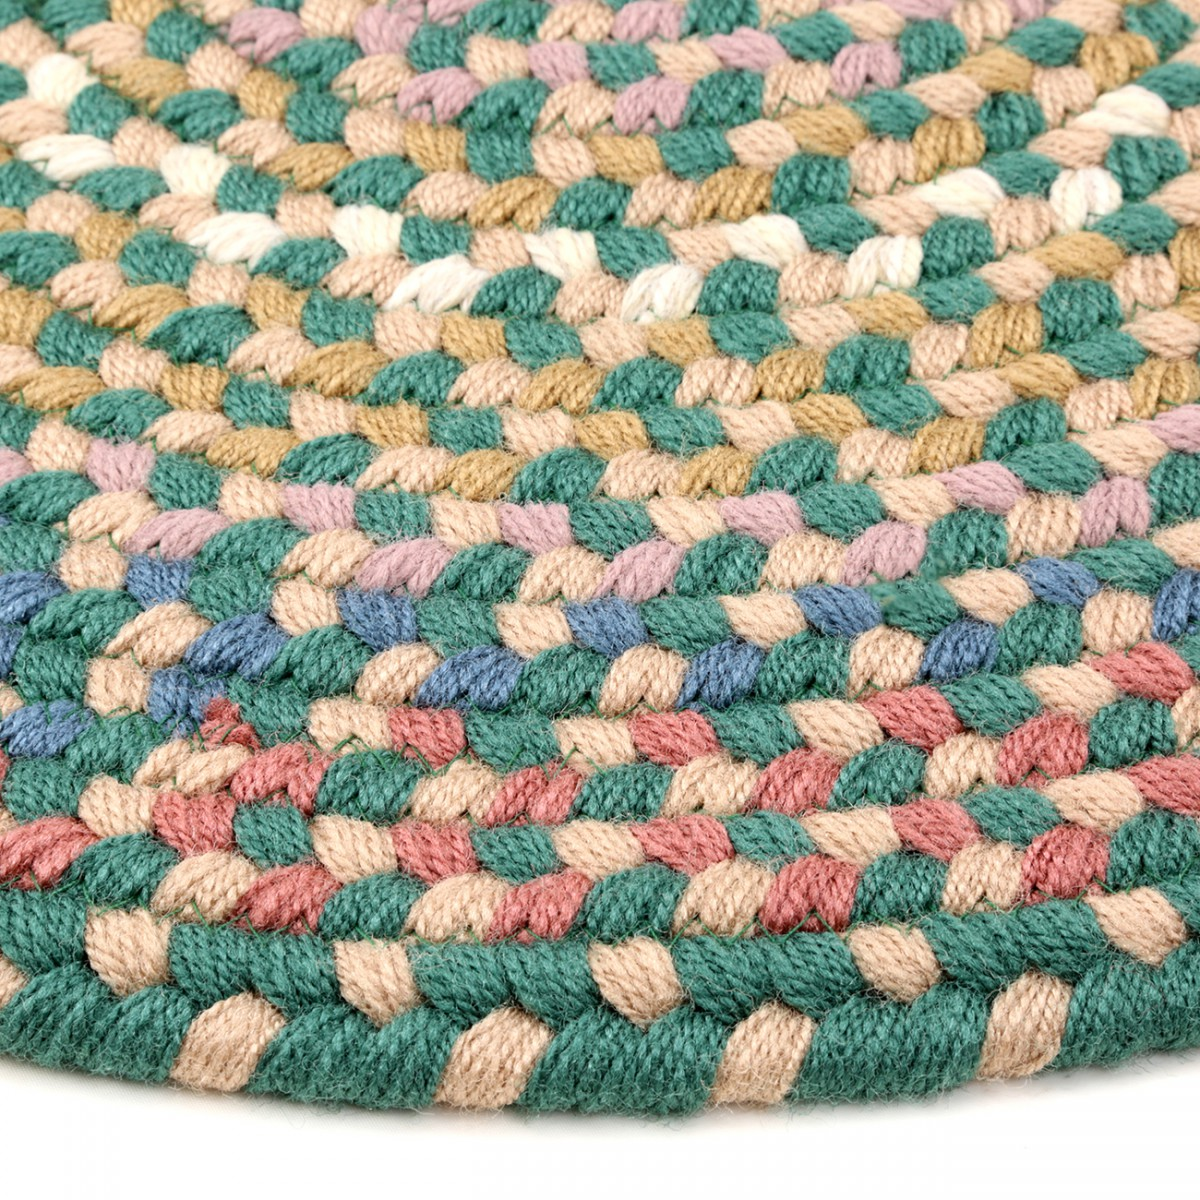 Kitchen Rug Nylon Braided Blue 2 x 3 braided area rug nylon green kitchen carpet oval circles indoor outdoor Braided Area Rugs